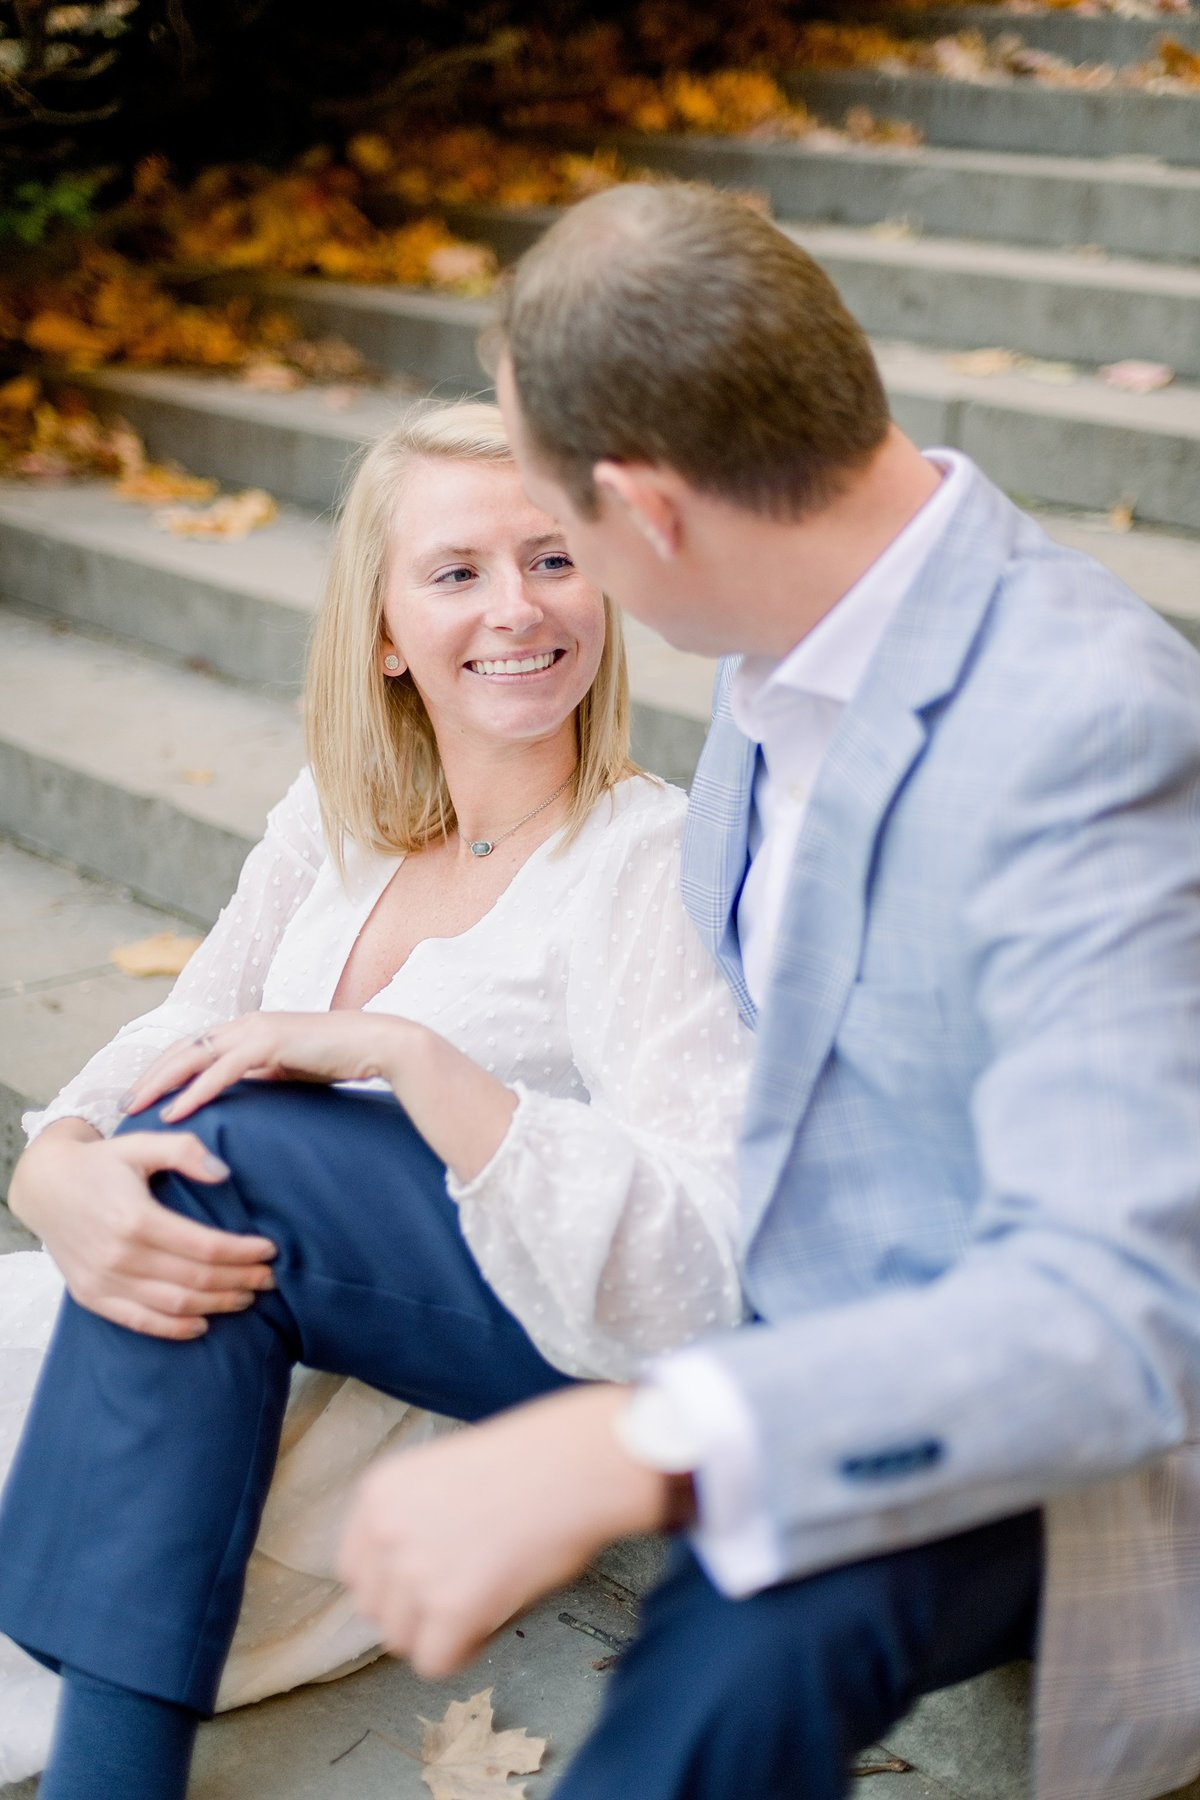 Holcomb Gardens Engagement Session Indianapolis, Indiana Wedding Photographer Alison Mae Photography_3192